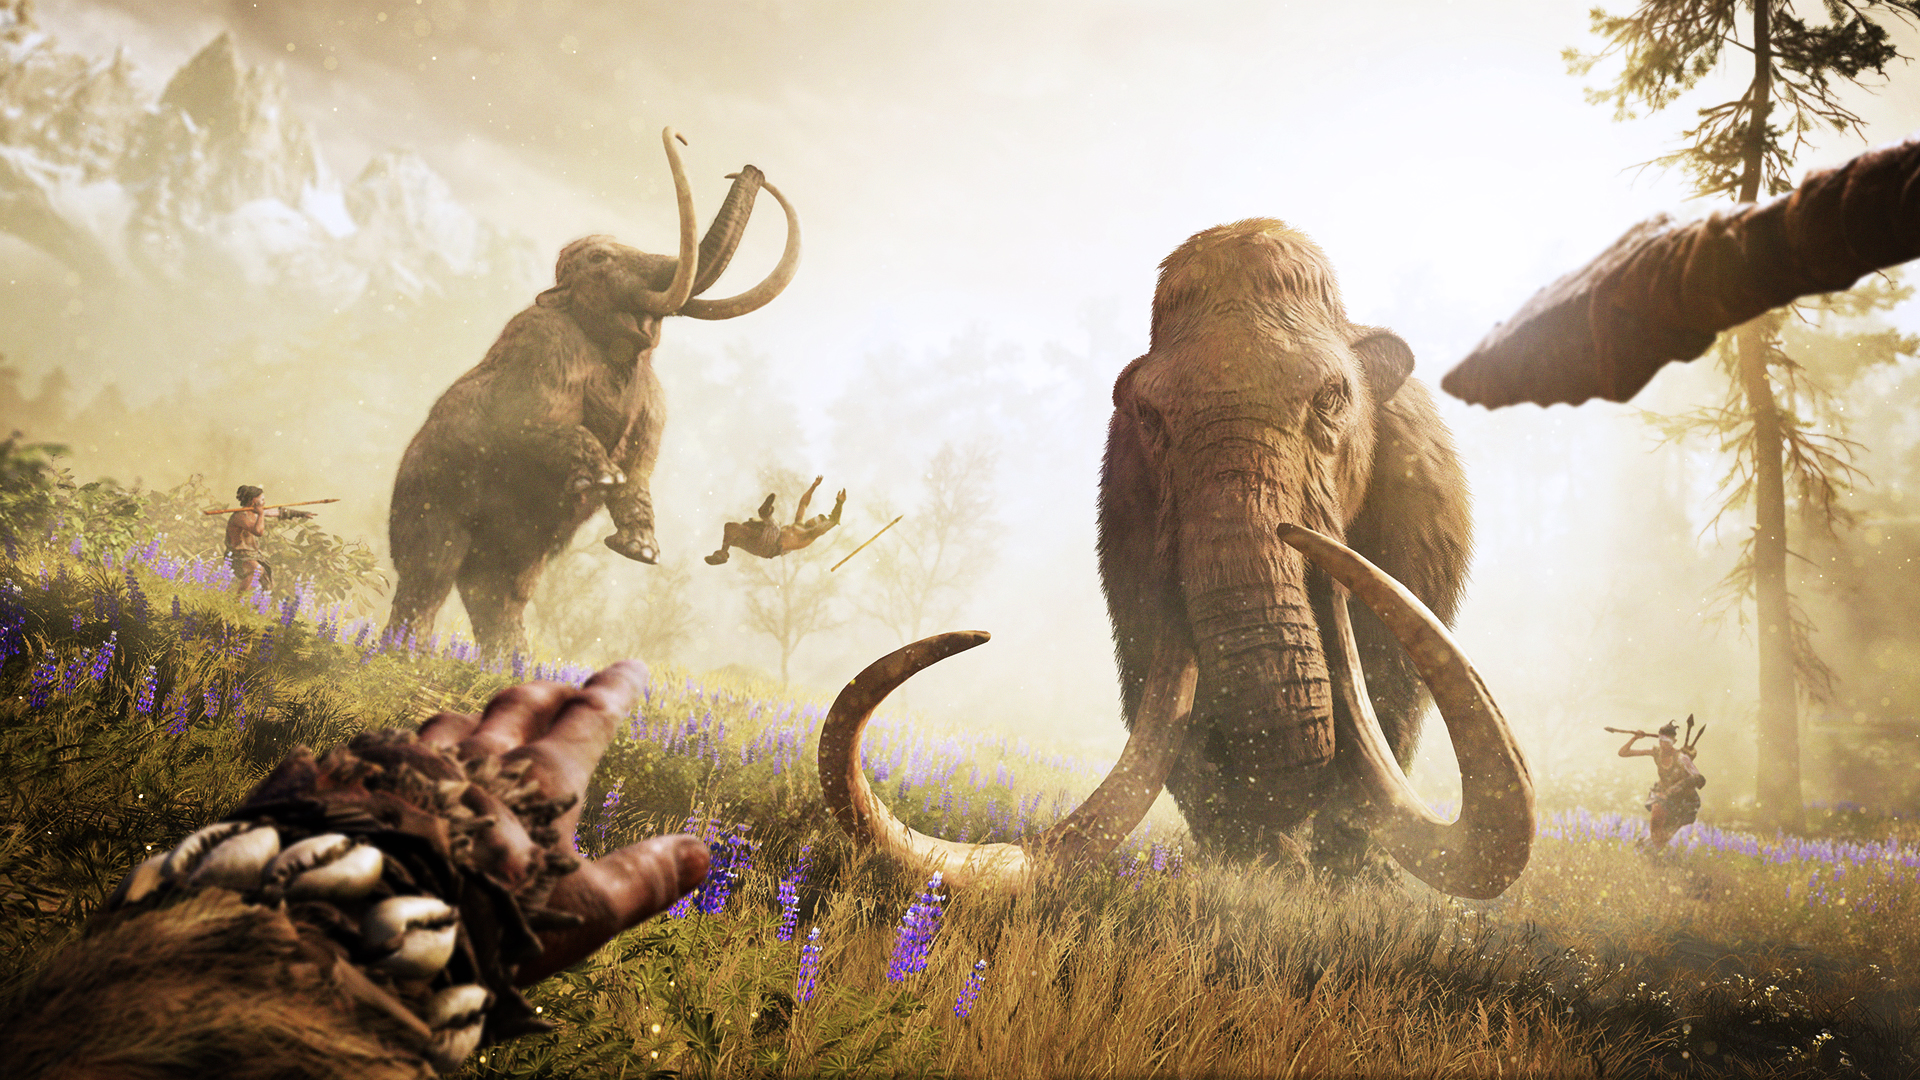 'Far Cry Primal' will take humanity back to the stone age